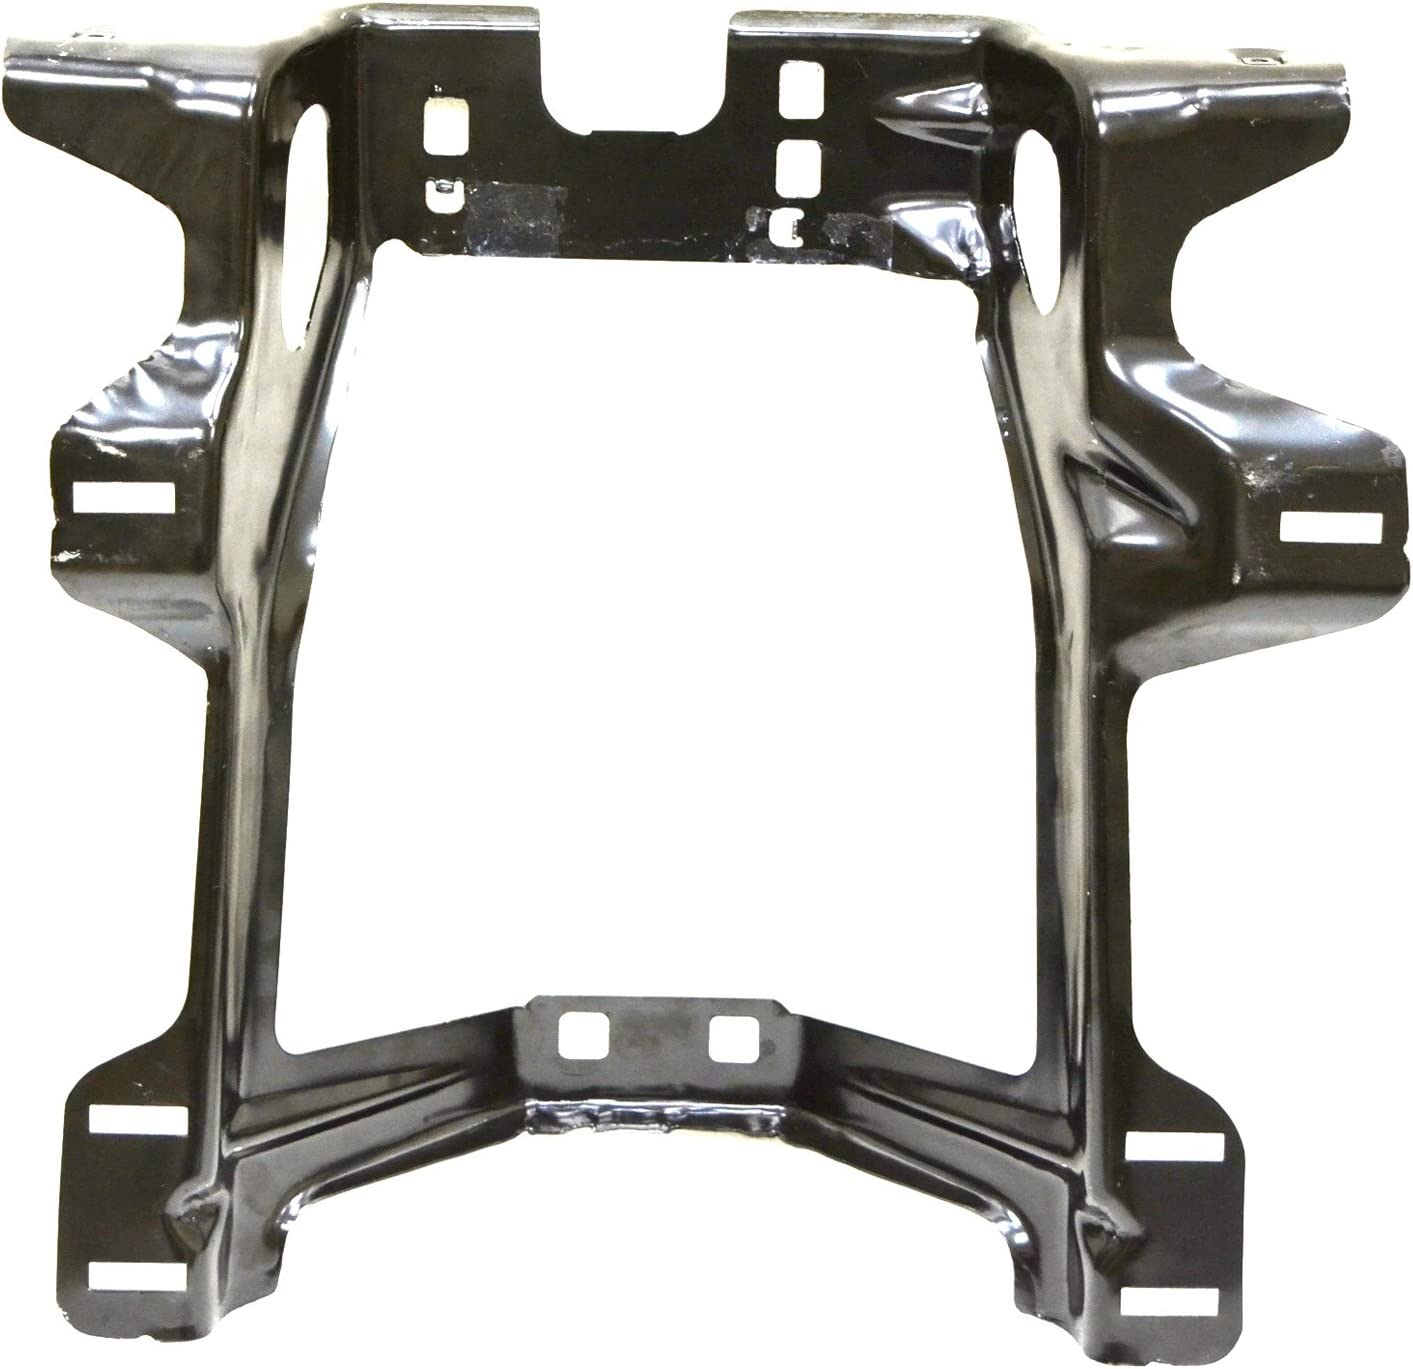 For Chevy Silverado 1500 07-13 Replace Front Center Radiator Support Brace